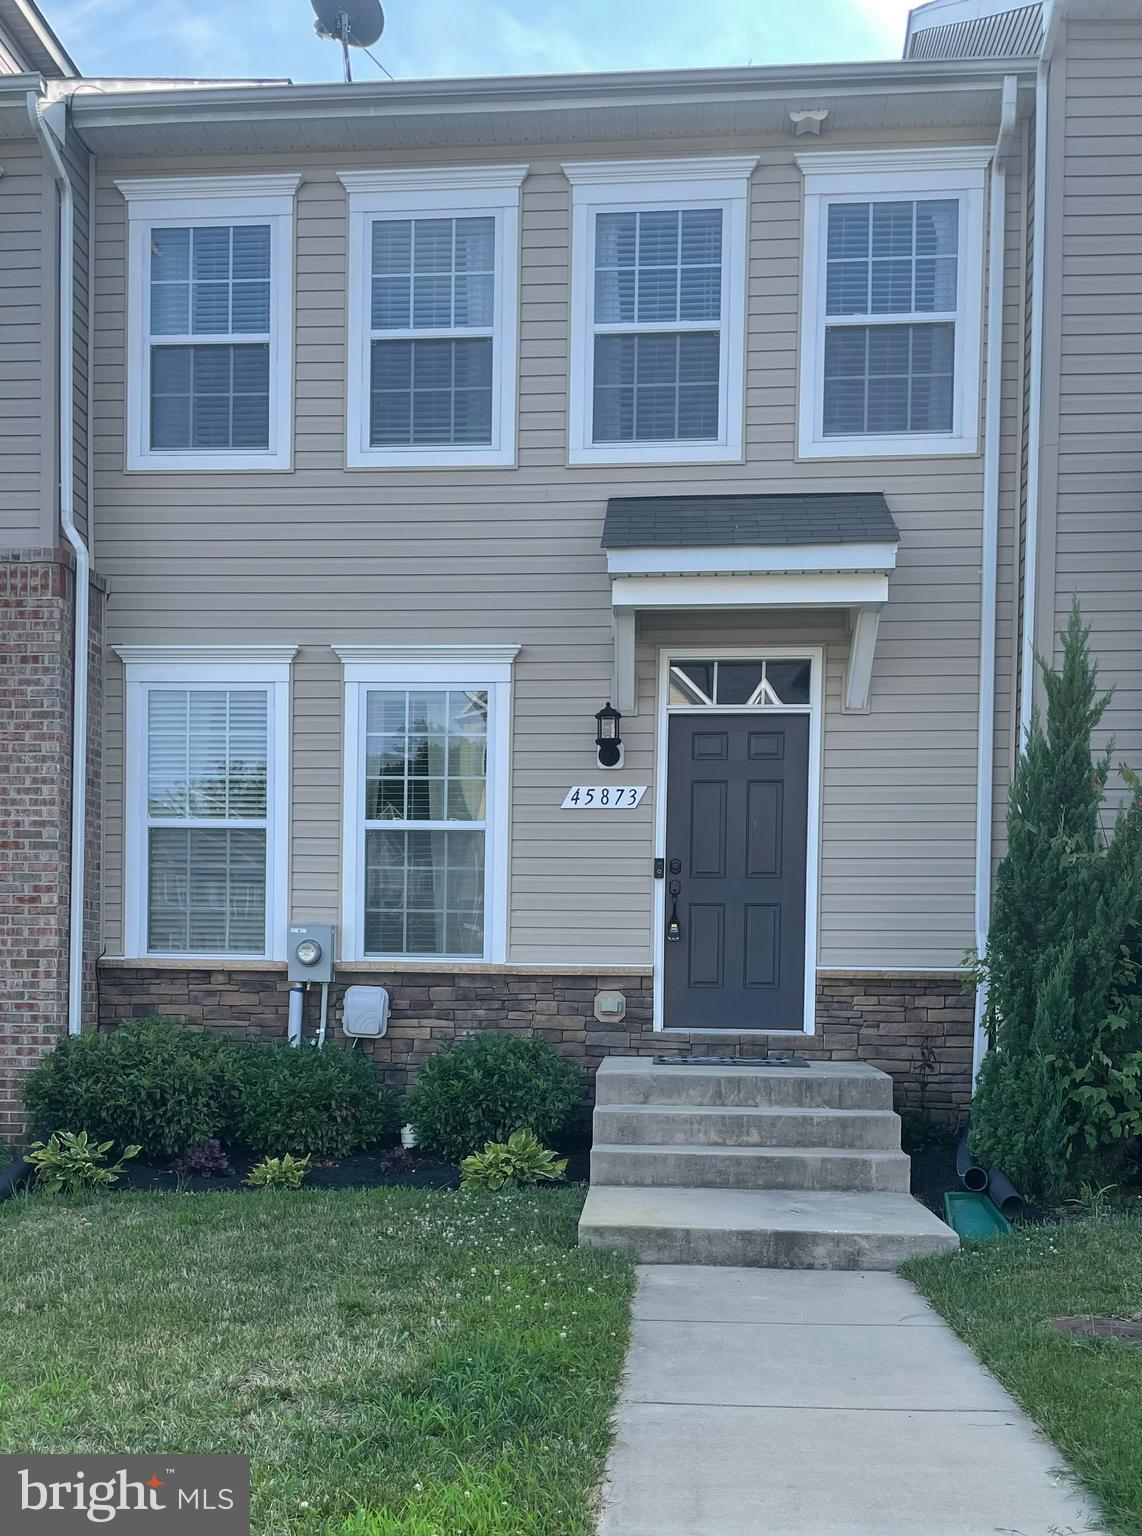 Home offers open floor plan with hardwood floors throughout. Gorgeous kitchen with granite counter t